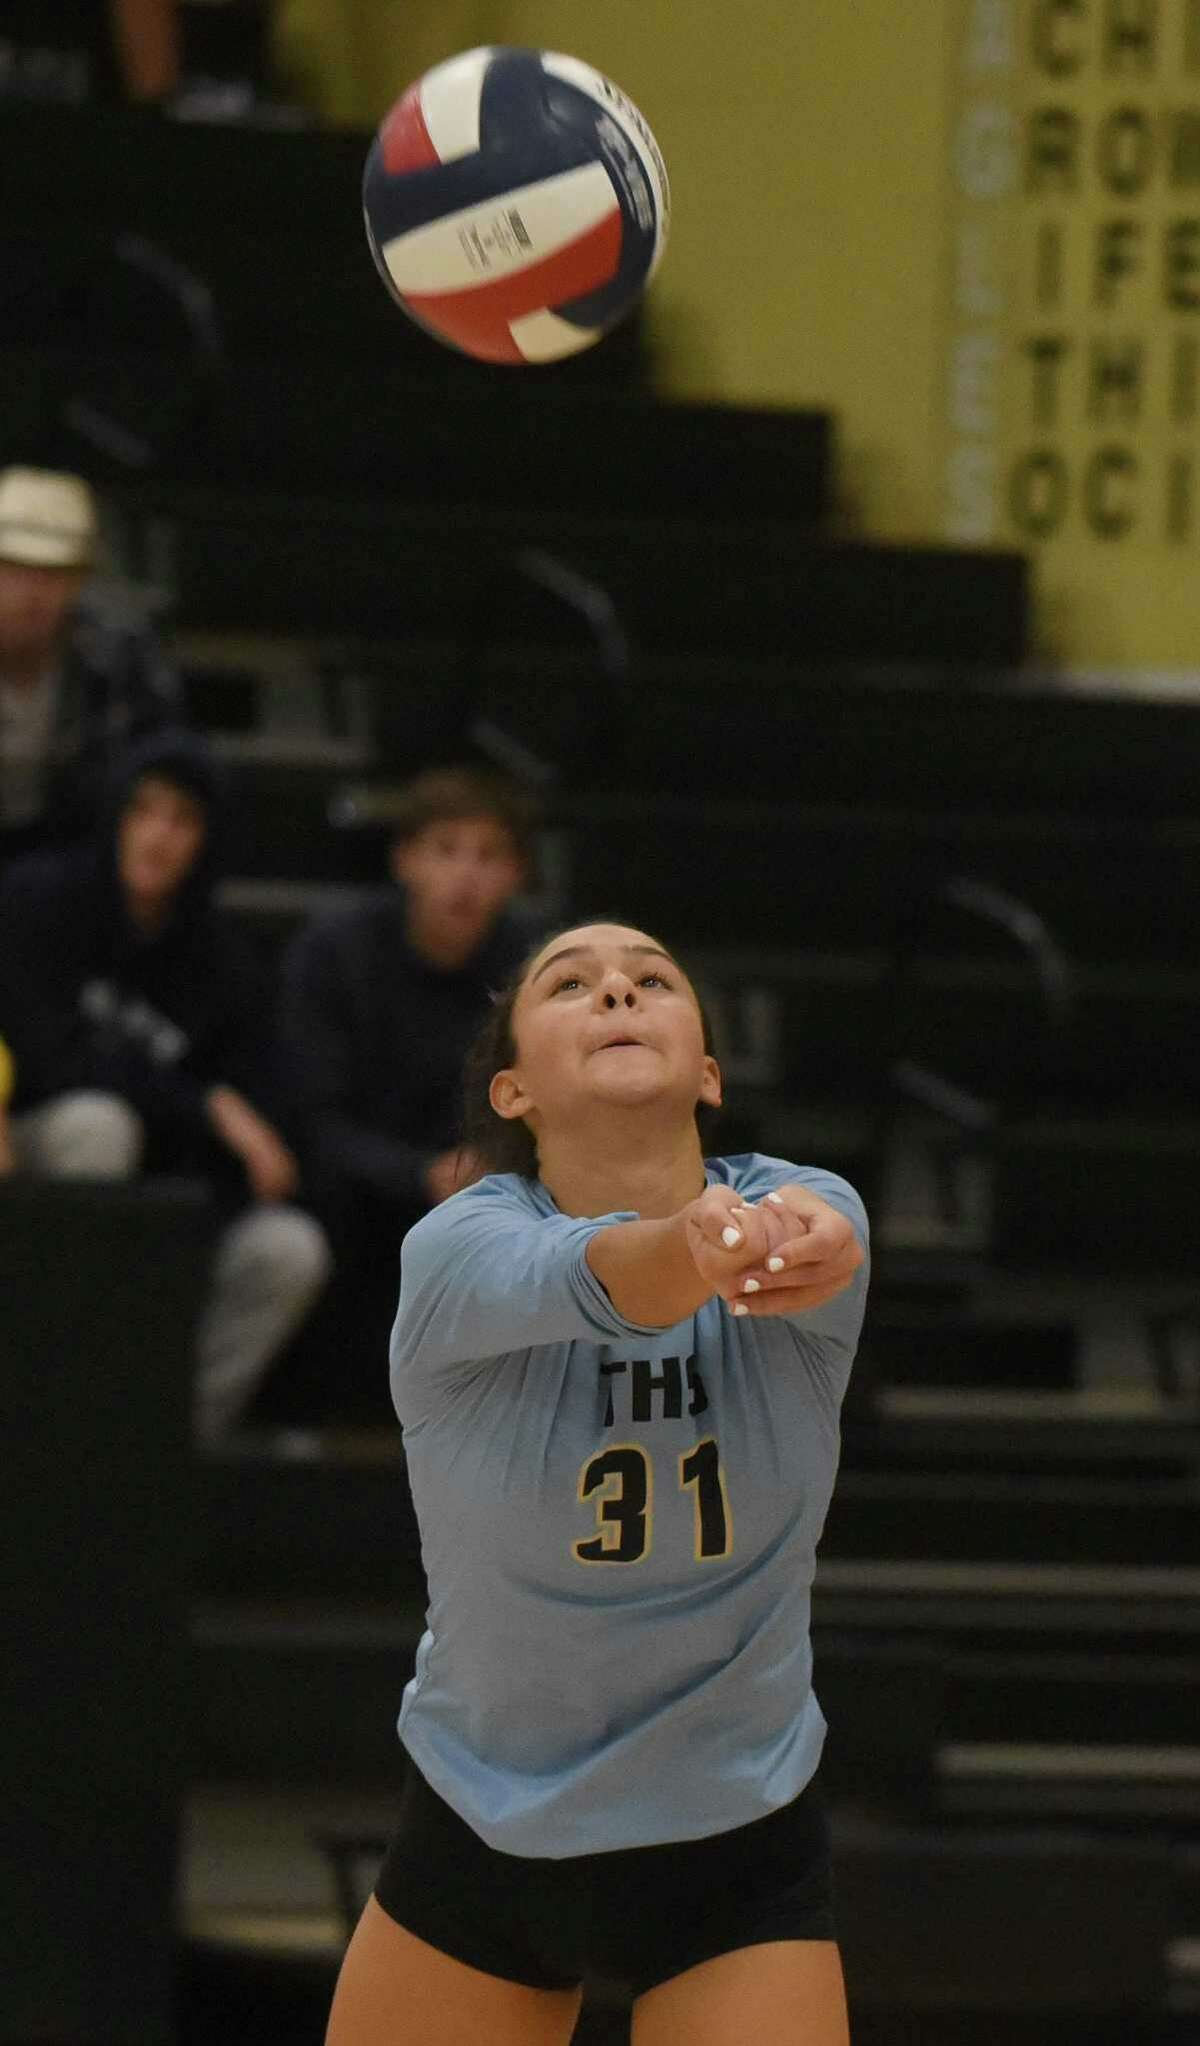 Trumbull libero Ashleigh Johnson (31) keeps the ball up during an FCIAC girls volleyball quarterfinal game against New Canaan at Trumbull High School on Tuesday, Nov. 5, 2019.